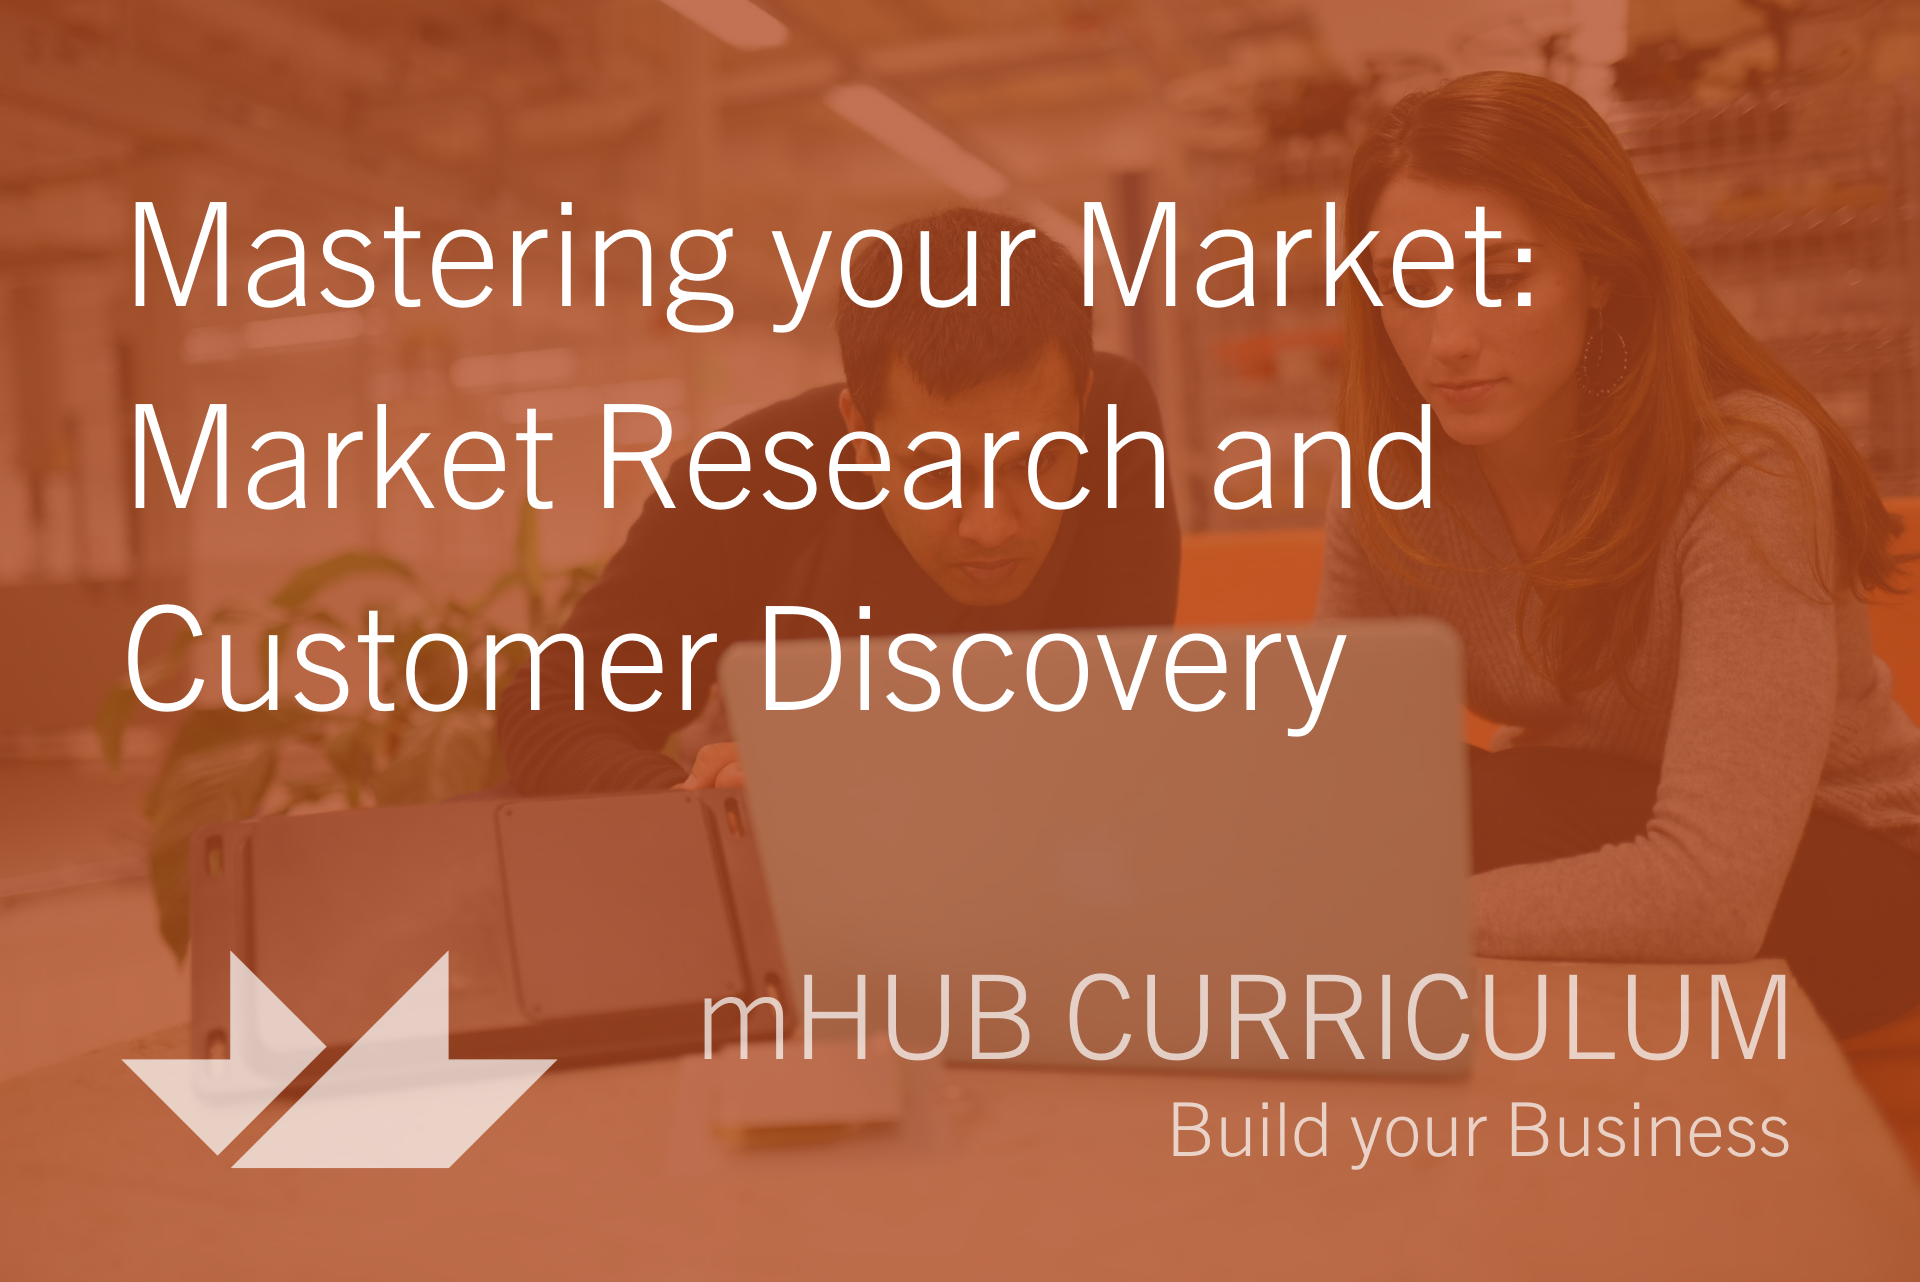 Mastering Your Market: Market Research and Customer Discovery